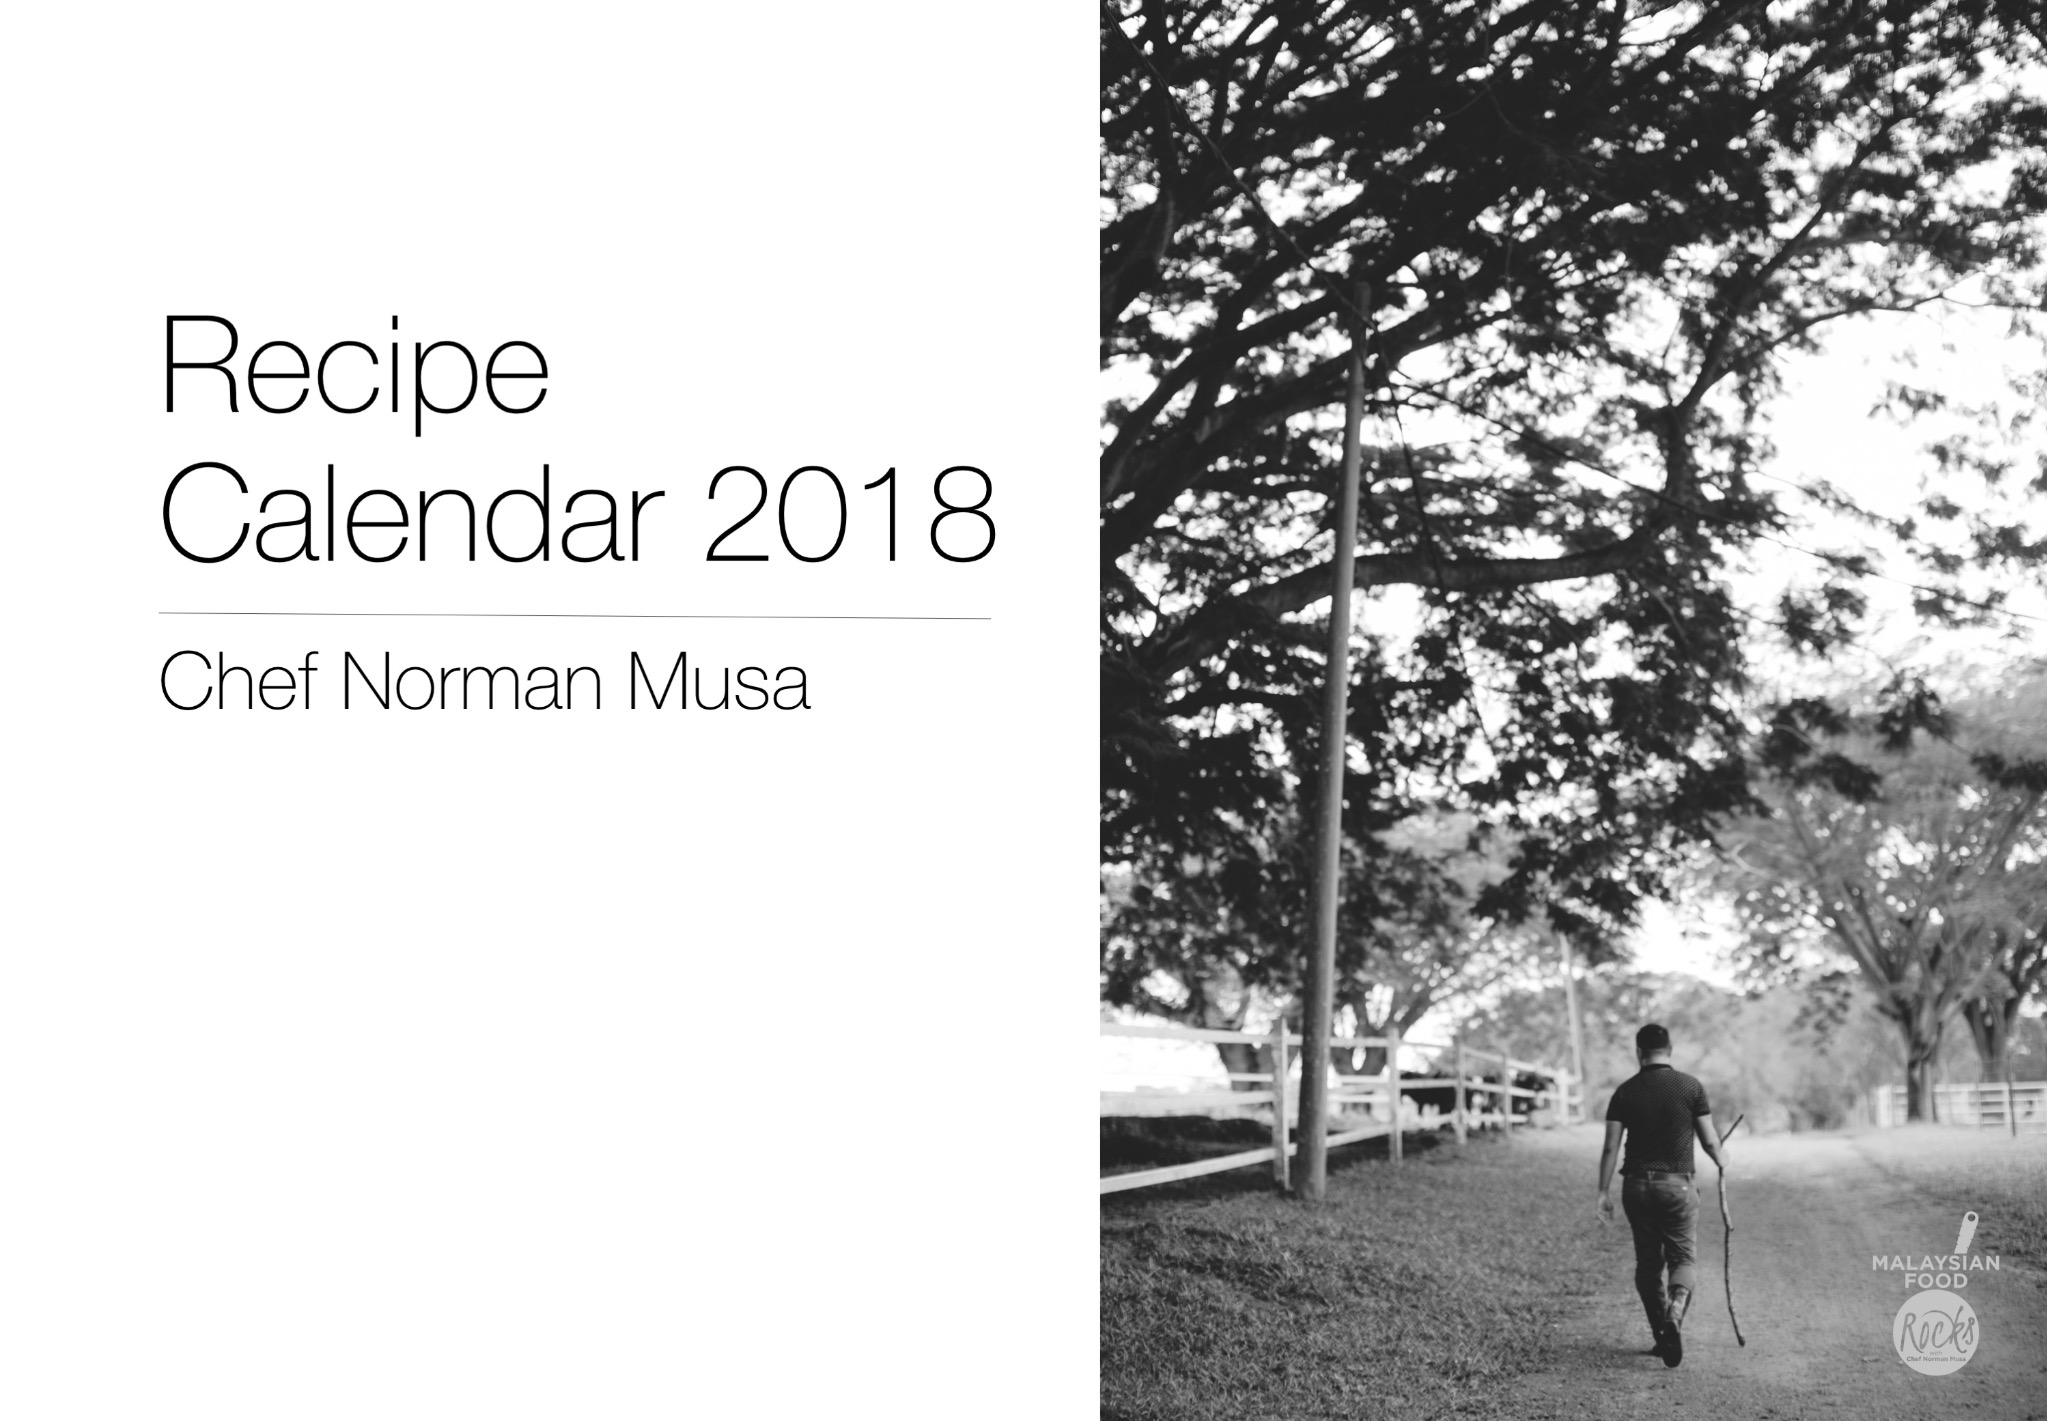 Chef Norman Musa's Recipe Calendar 2018 (PDF Download)